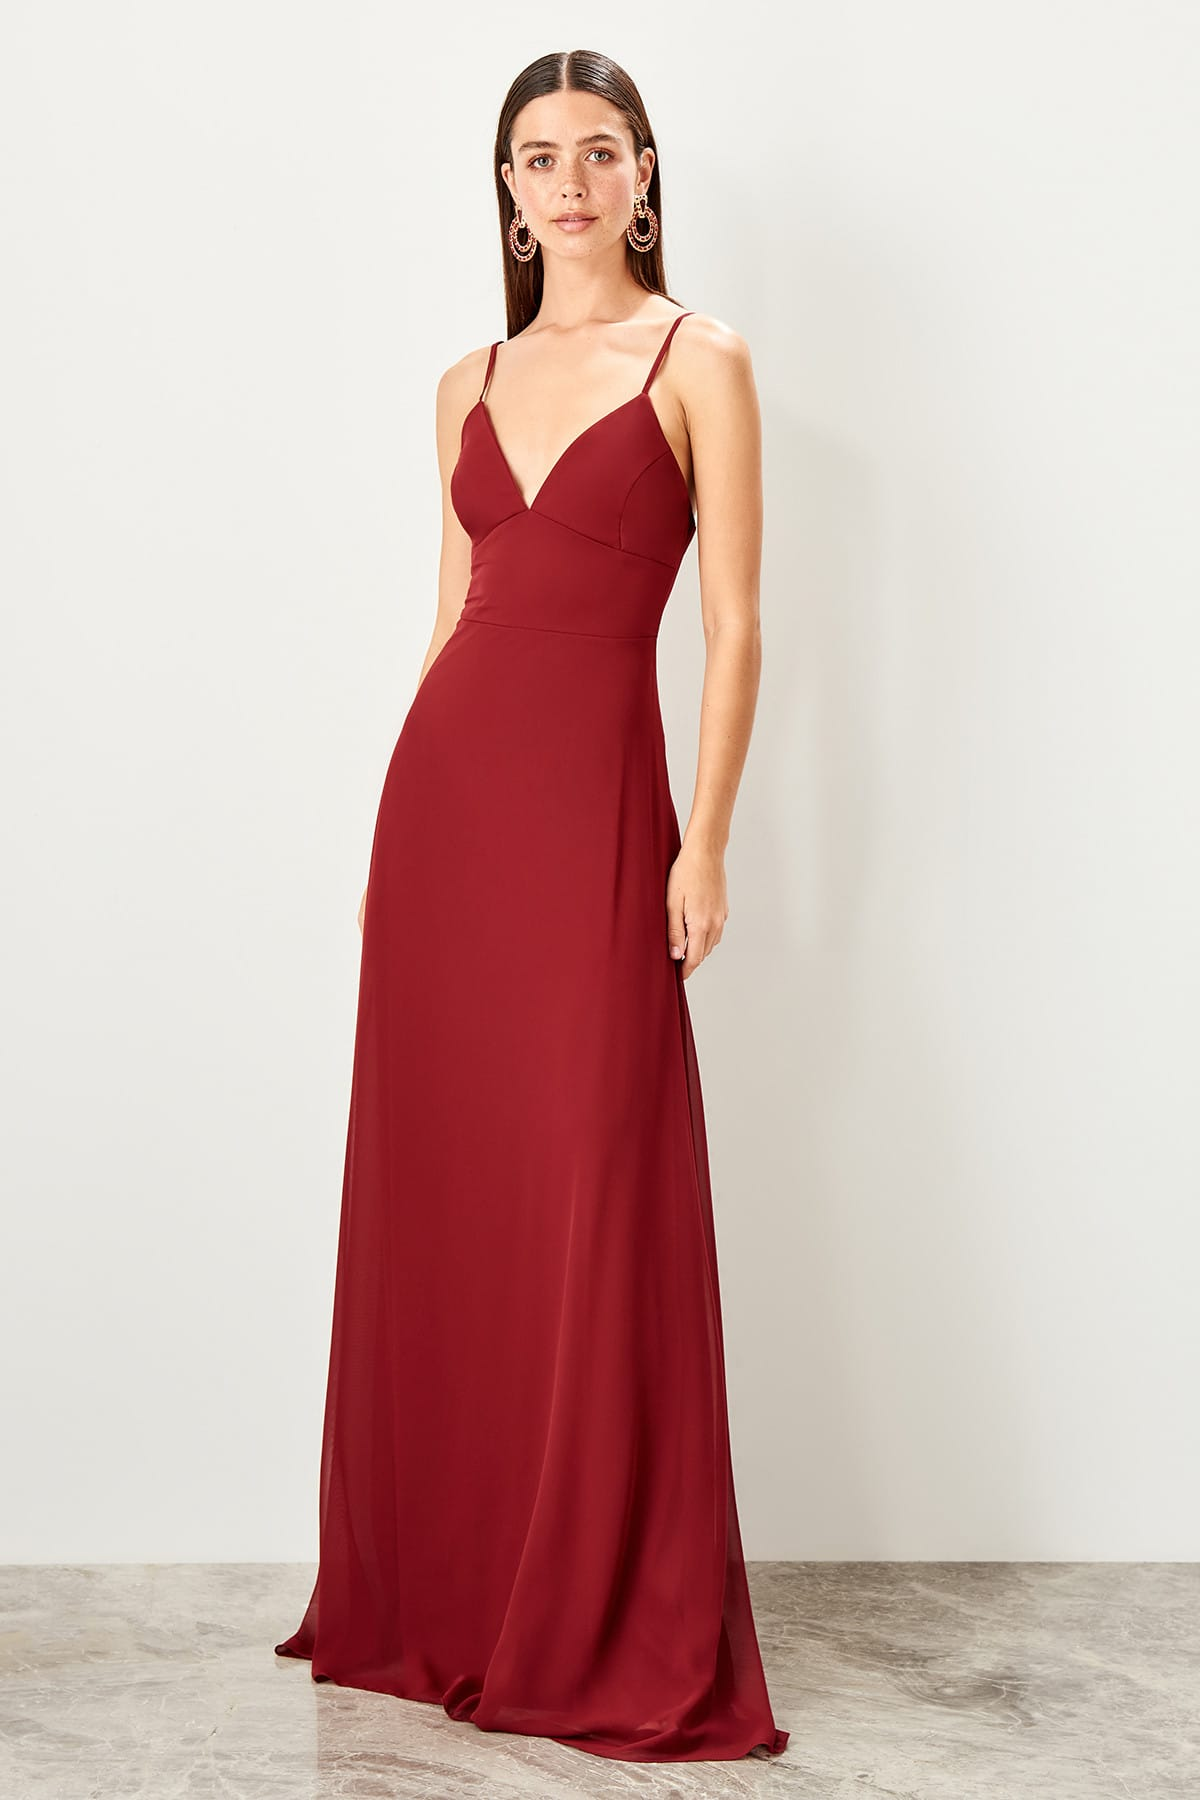 Trendyol Low-Cut Evening Dress TPRSS19FZ0392